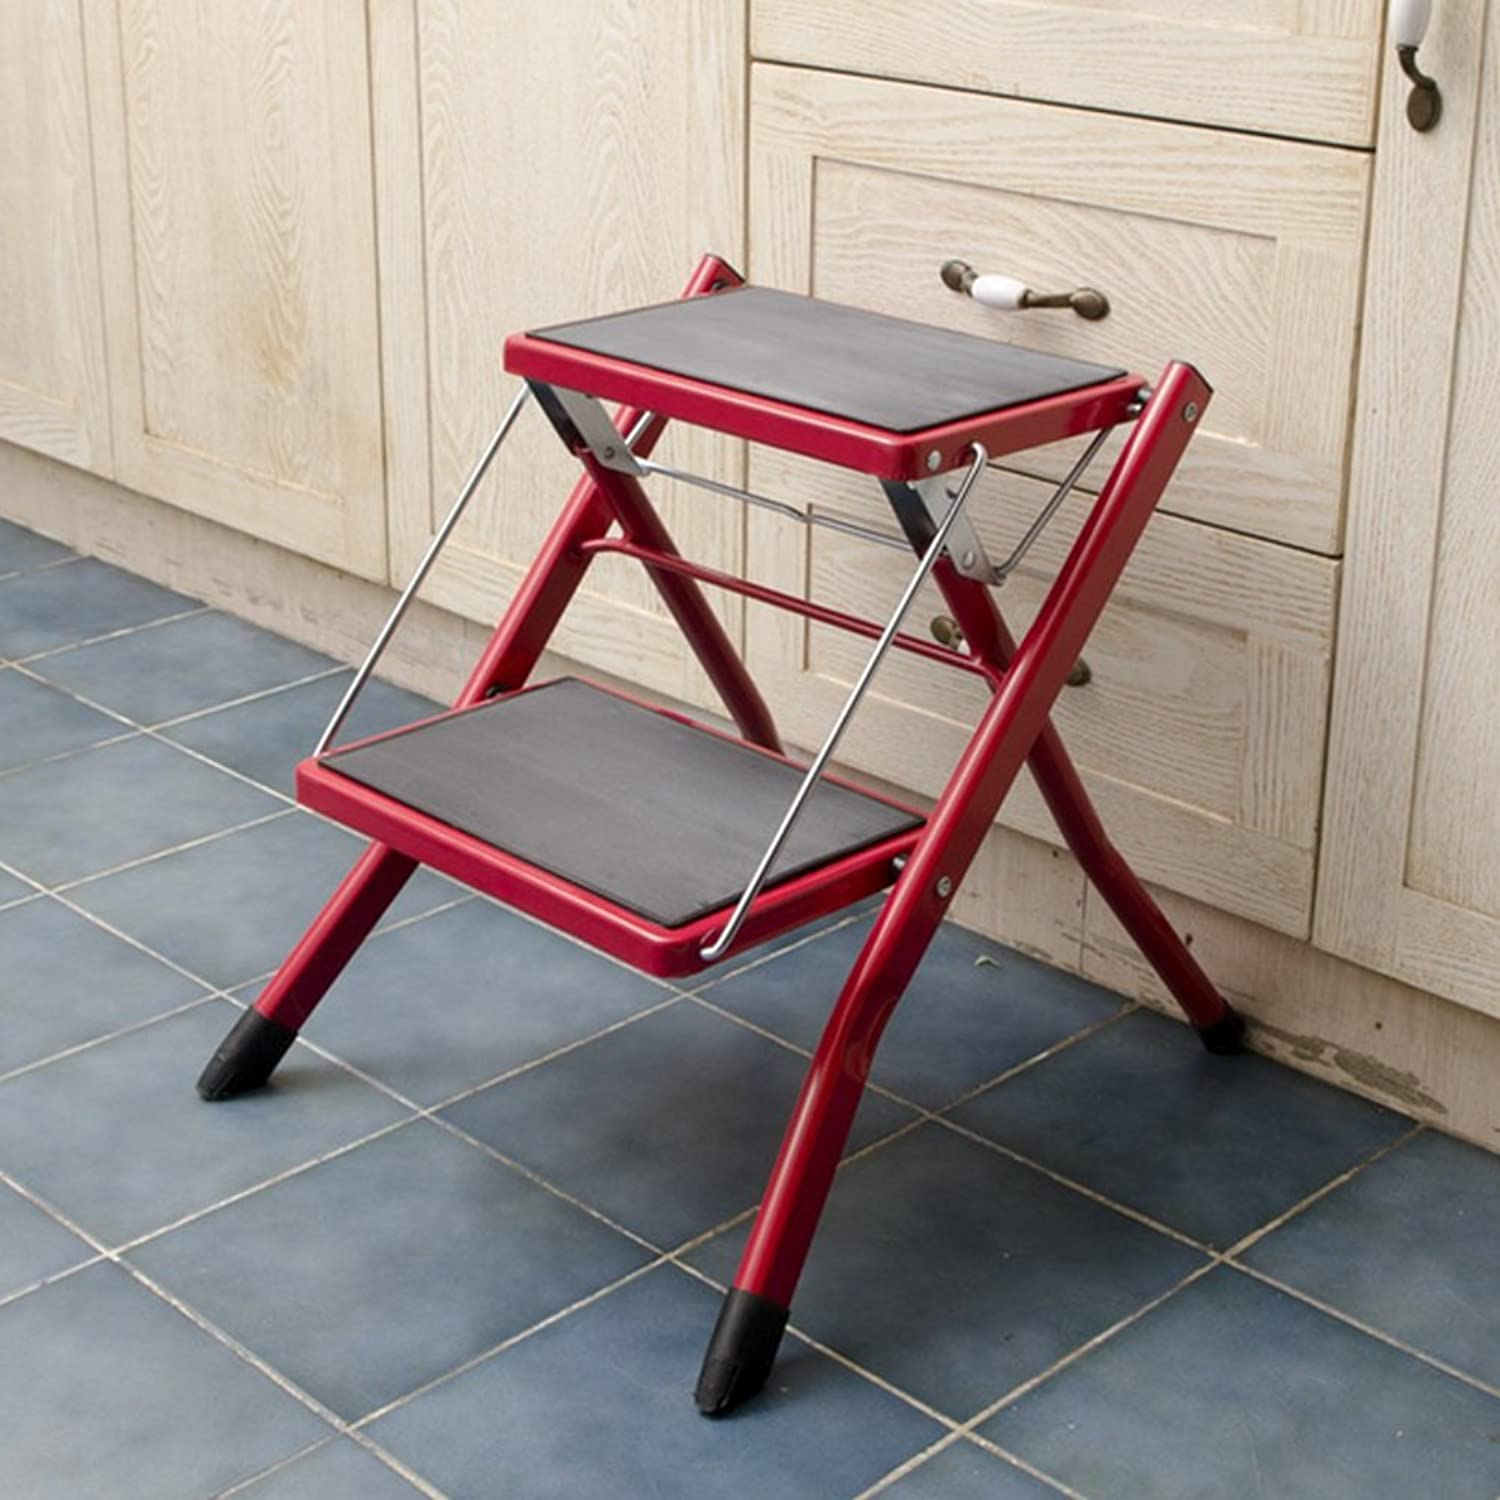 PENGFEI Folding Ladder Stool Stairs Multifunction Portable Household Flower Stand Ascend shoes Bench Metal 2 Steps 3 colors, High 41.5CM Furniture (color   Red)